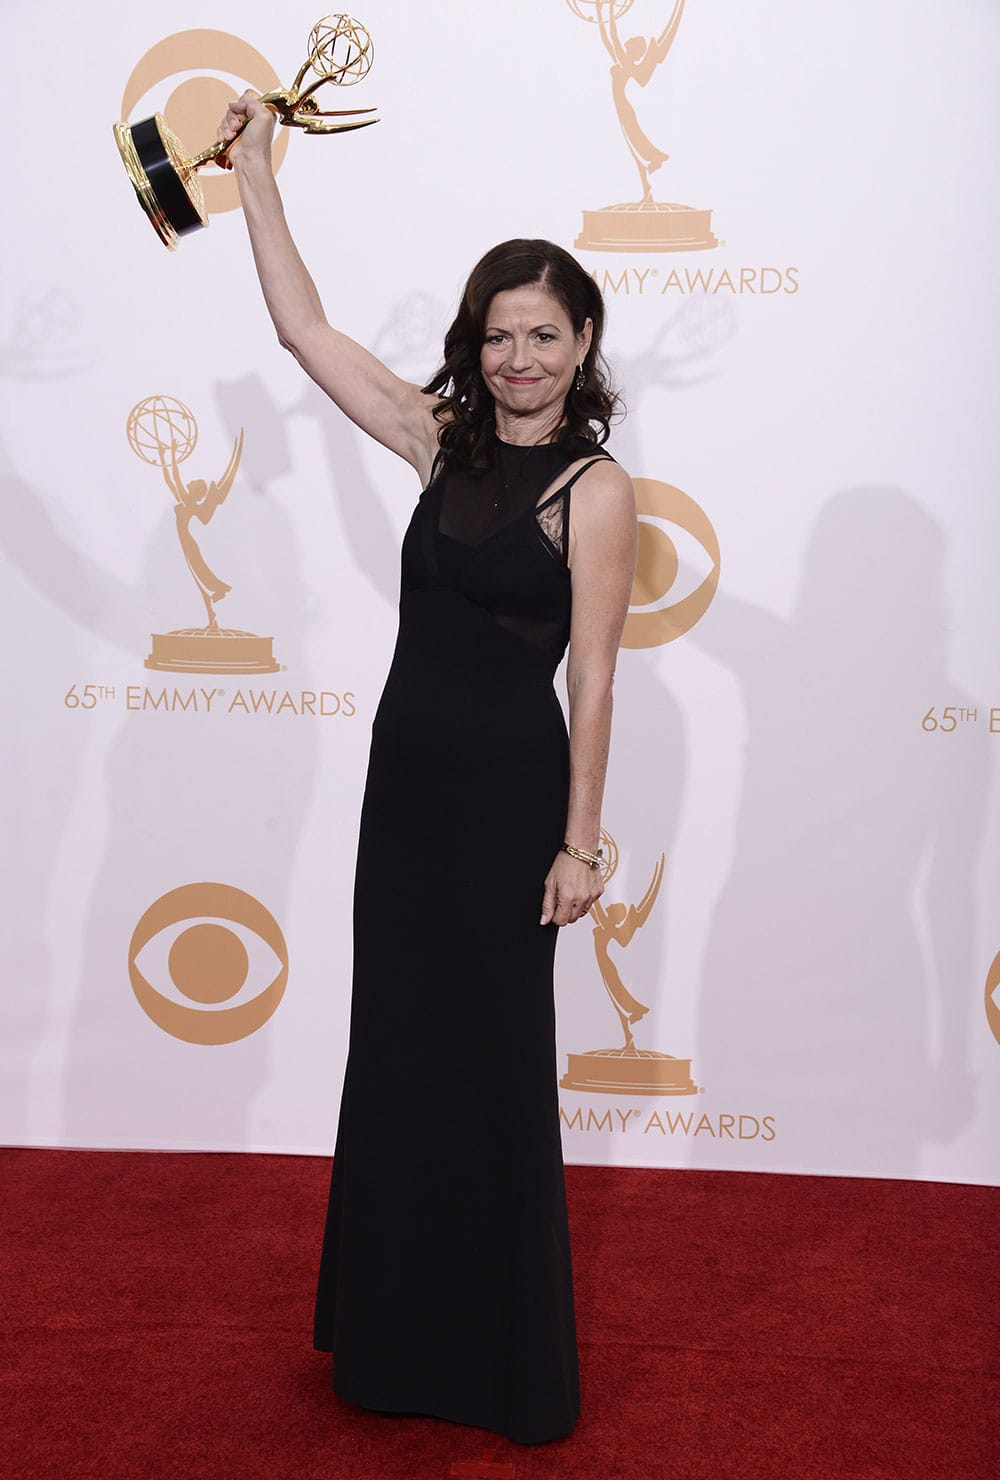 Director Gail Mancuso, winner of the best directing for a comedy series for 'Modern Family' poses backstage at the 65th Primetime Emmy Awards at Nokia Theatre.